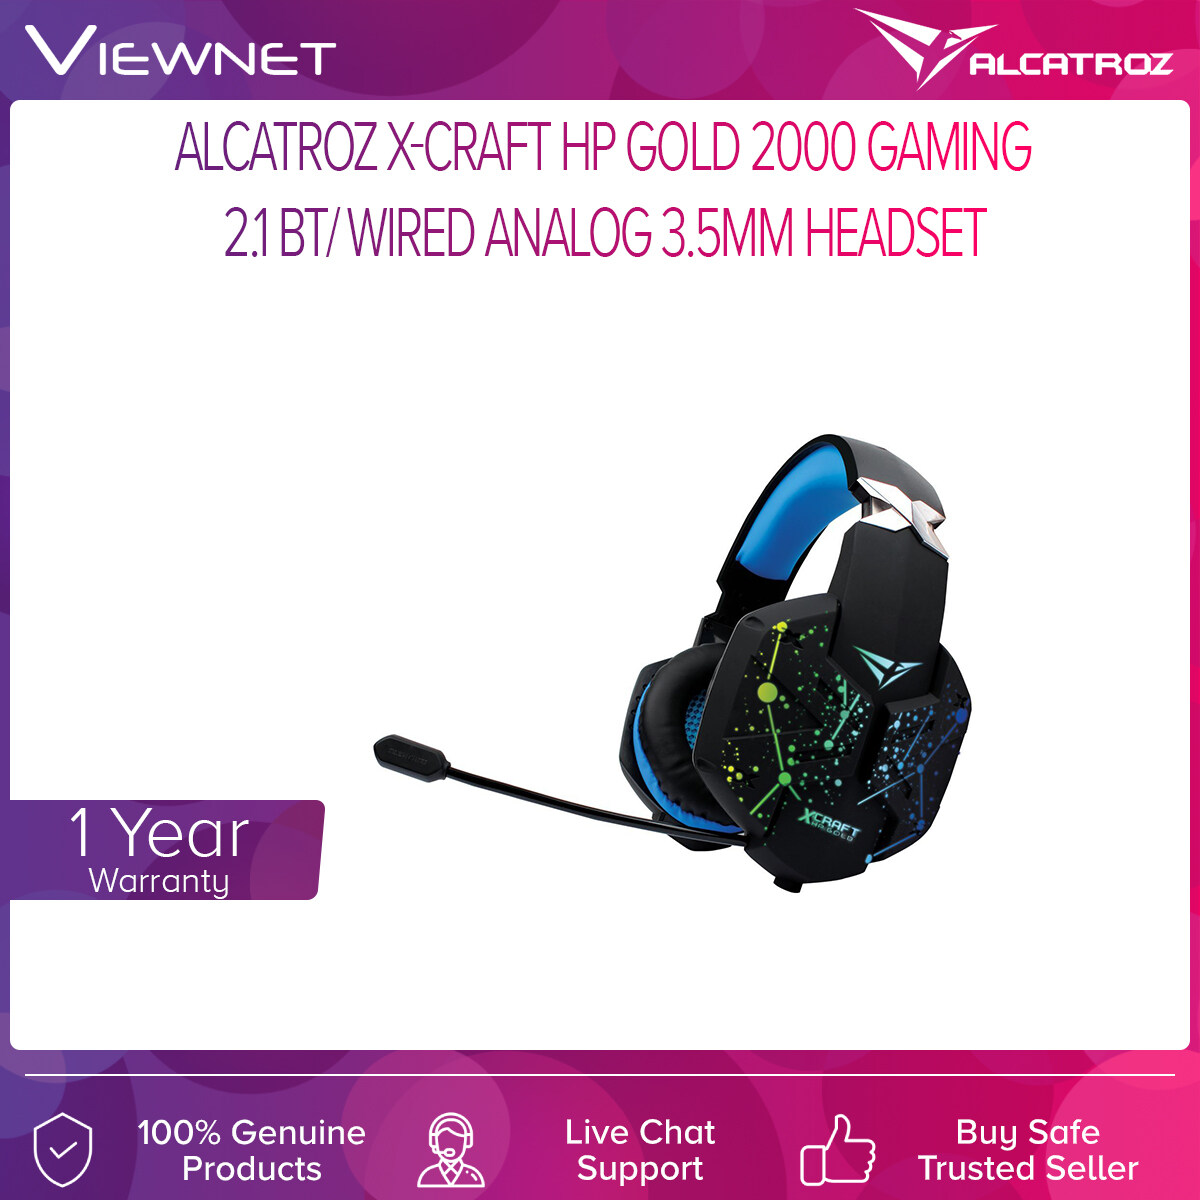 Alcatroz X-Craft HP Gold 2000 Gaming 2.1 BT/ Wired Analog 3.5MM Headset